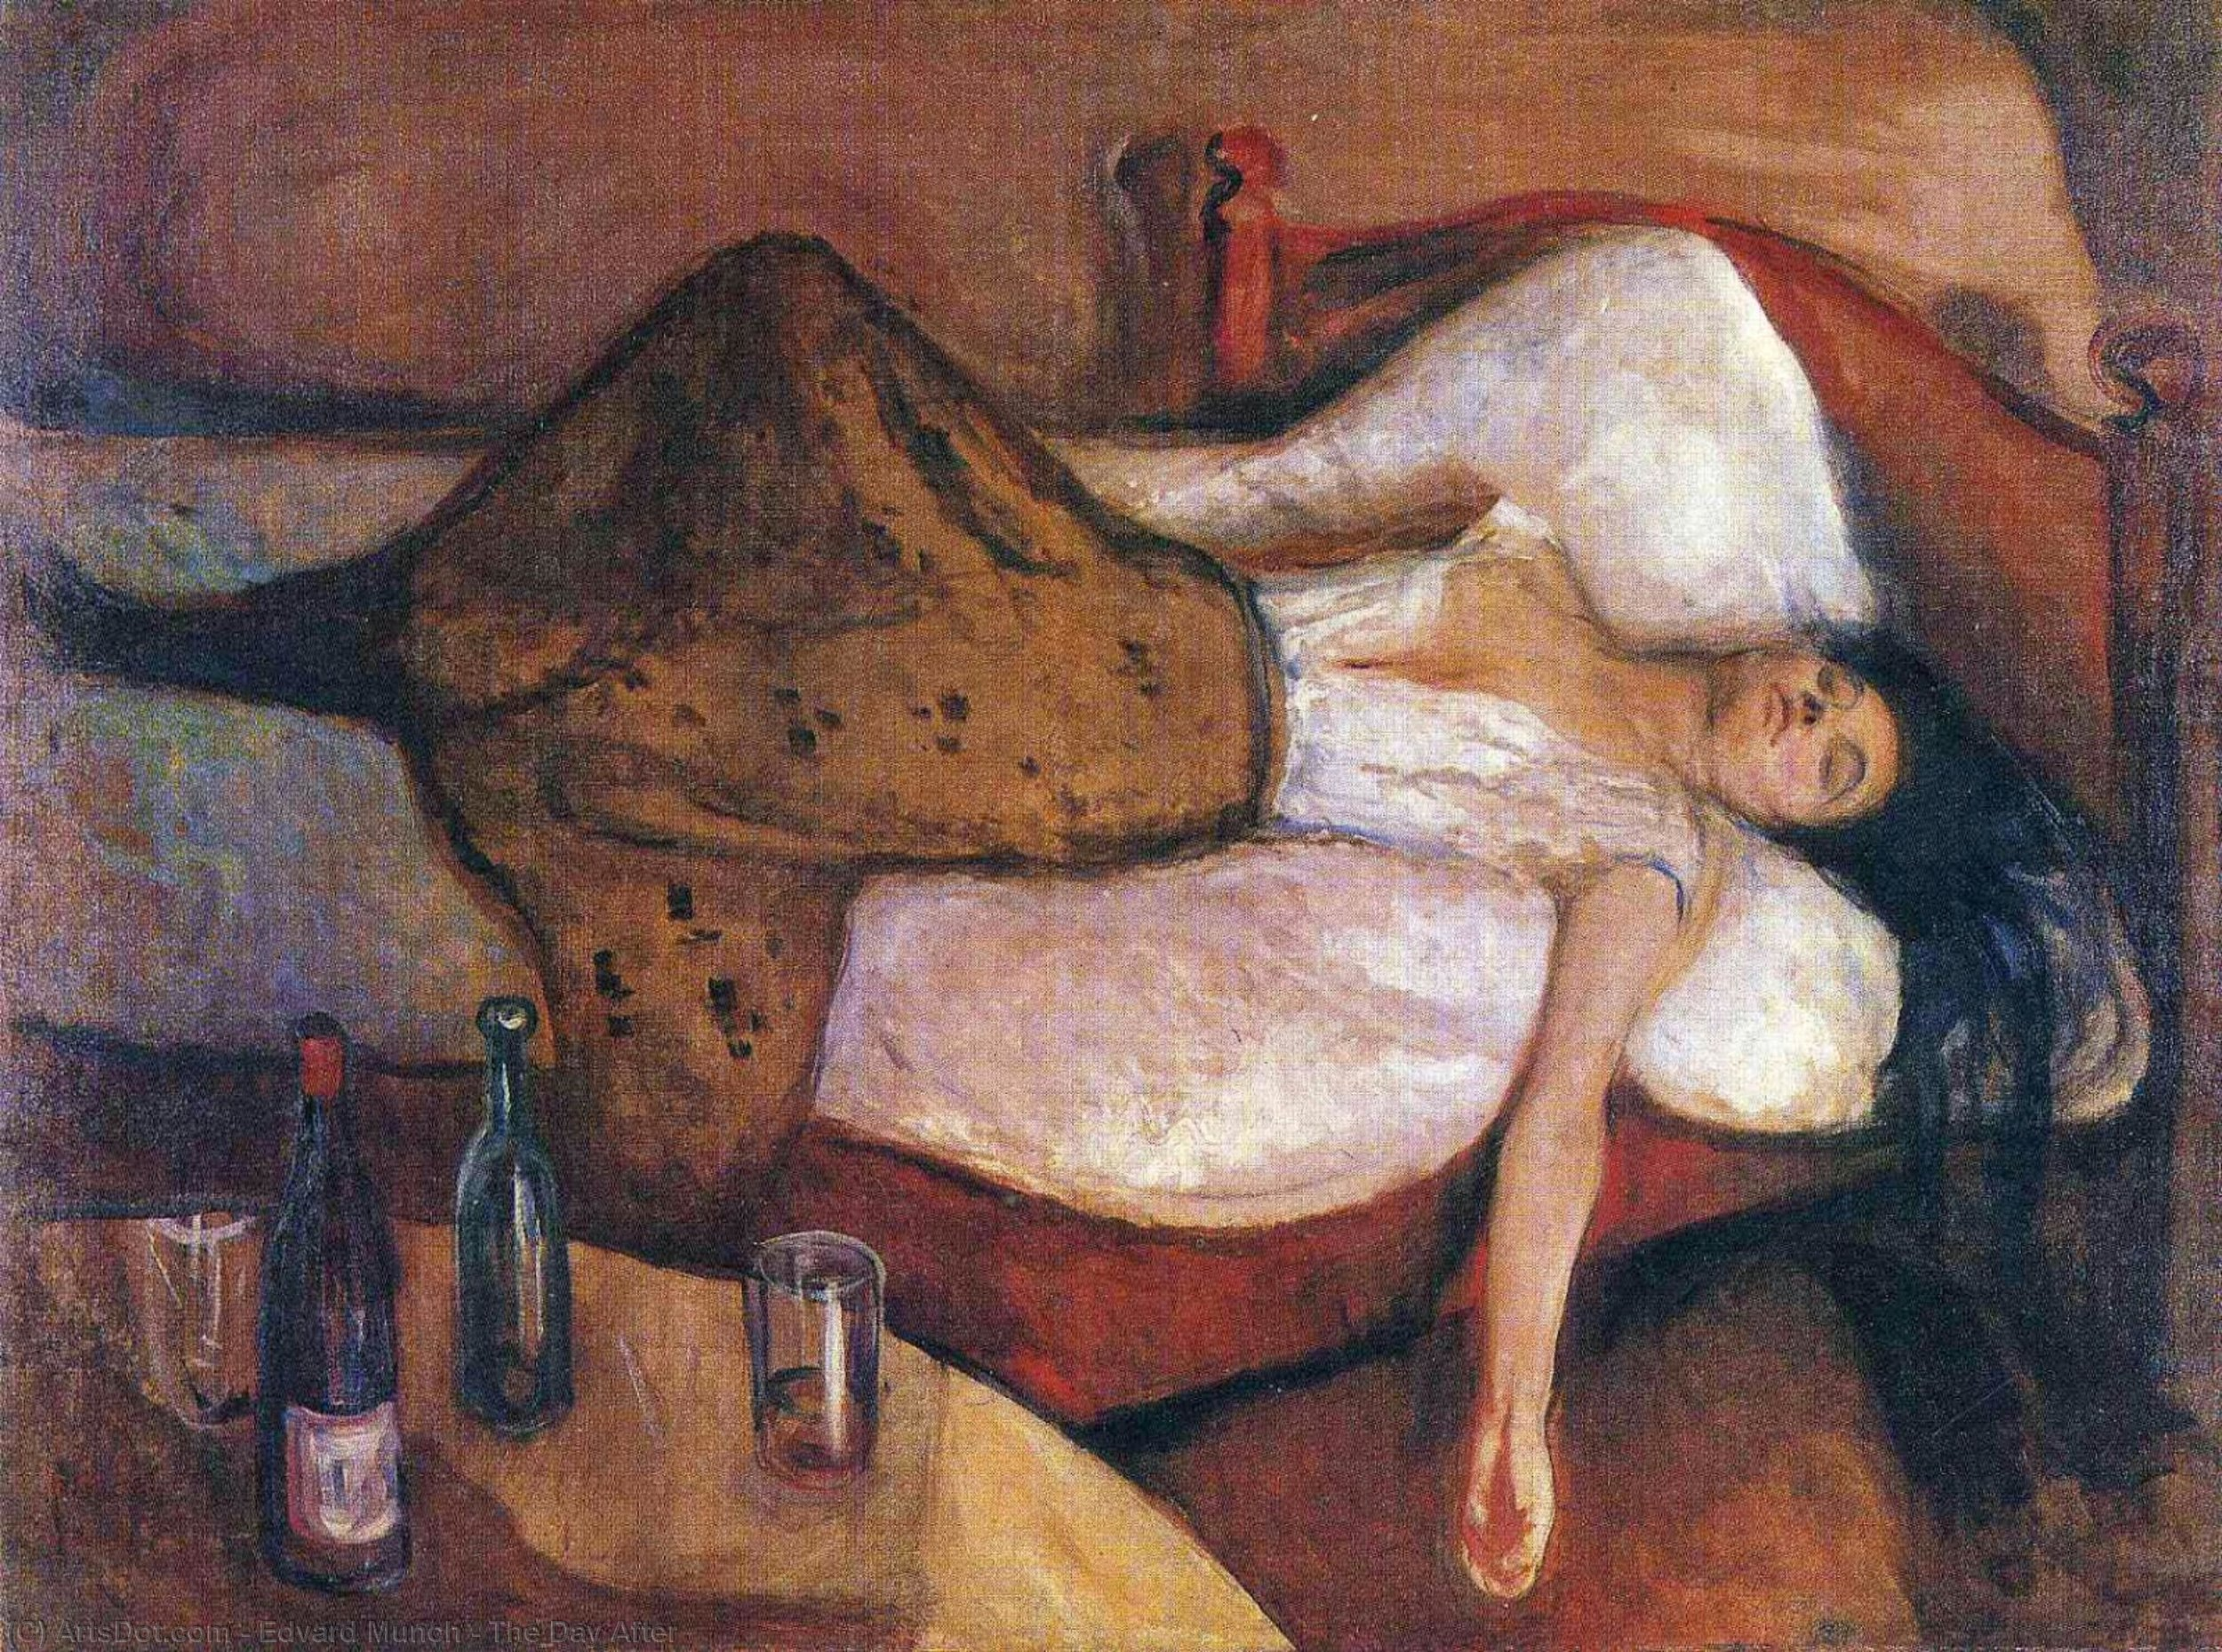 Edvard-munch-the-day-after.Jpg